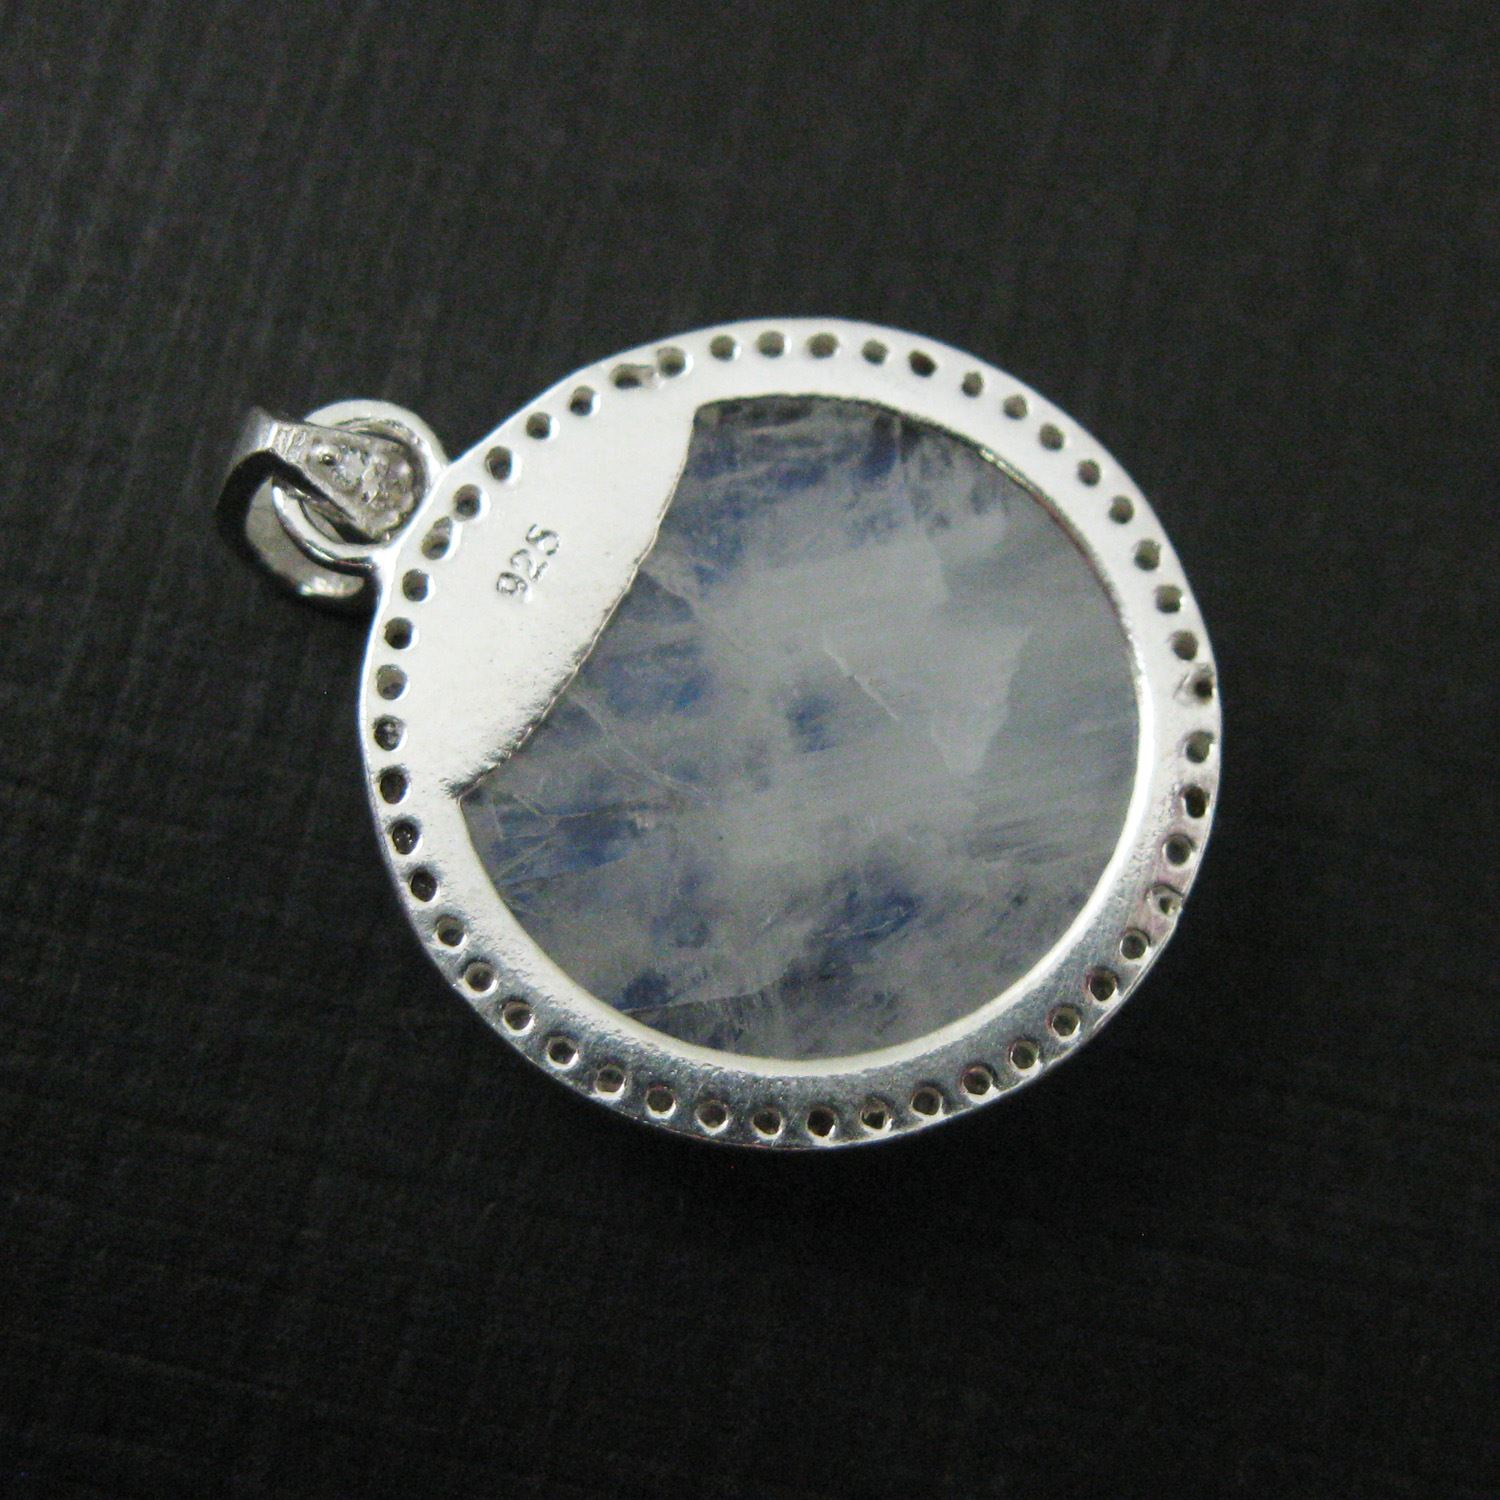 Sterling Silver Pave Bezel Gemstone Pendant - Cubic Zirconia Pave Setting -  Round Faceted Stone-Moonstone- 21mm